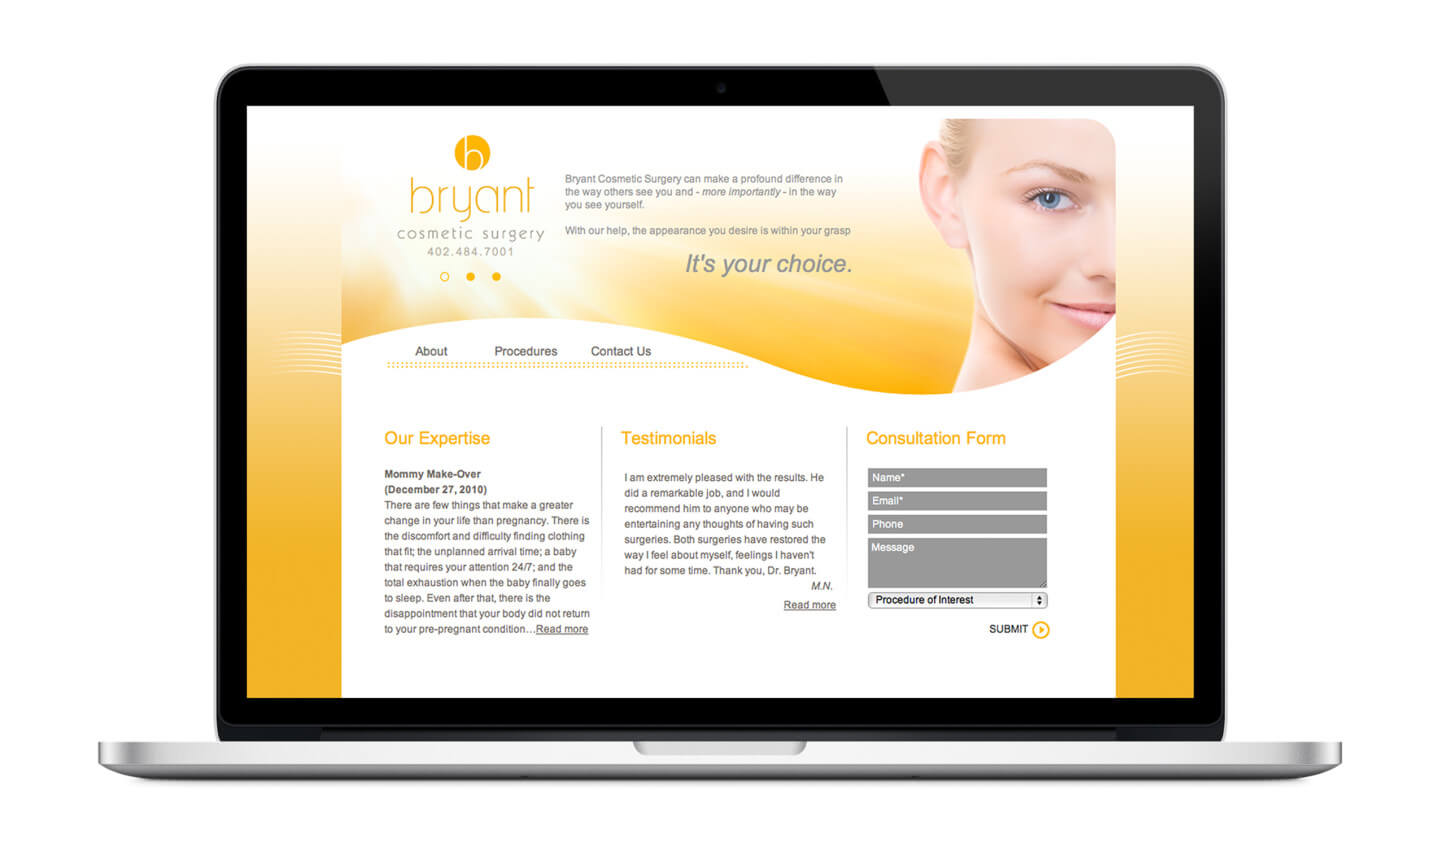 Bryant Cosmetic Surgery website